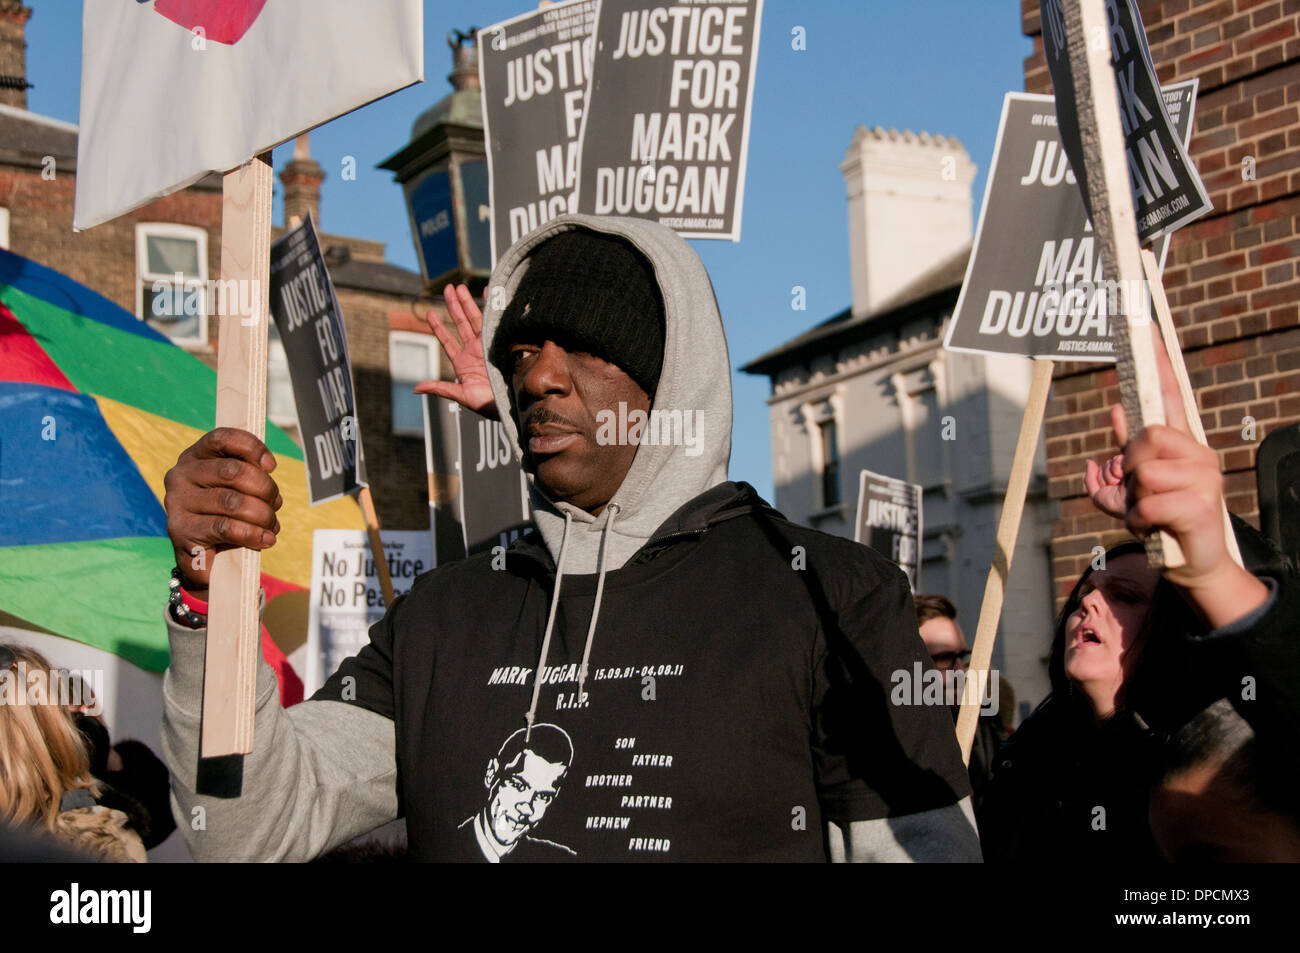 Family & friends at Vigil for Mark Duggan killed in 2011 by police officer following inquest judgement of lawful killing 11.1.14 - Stock Image